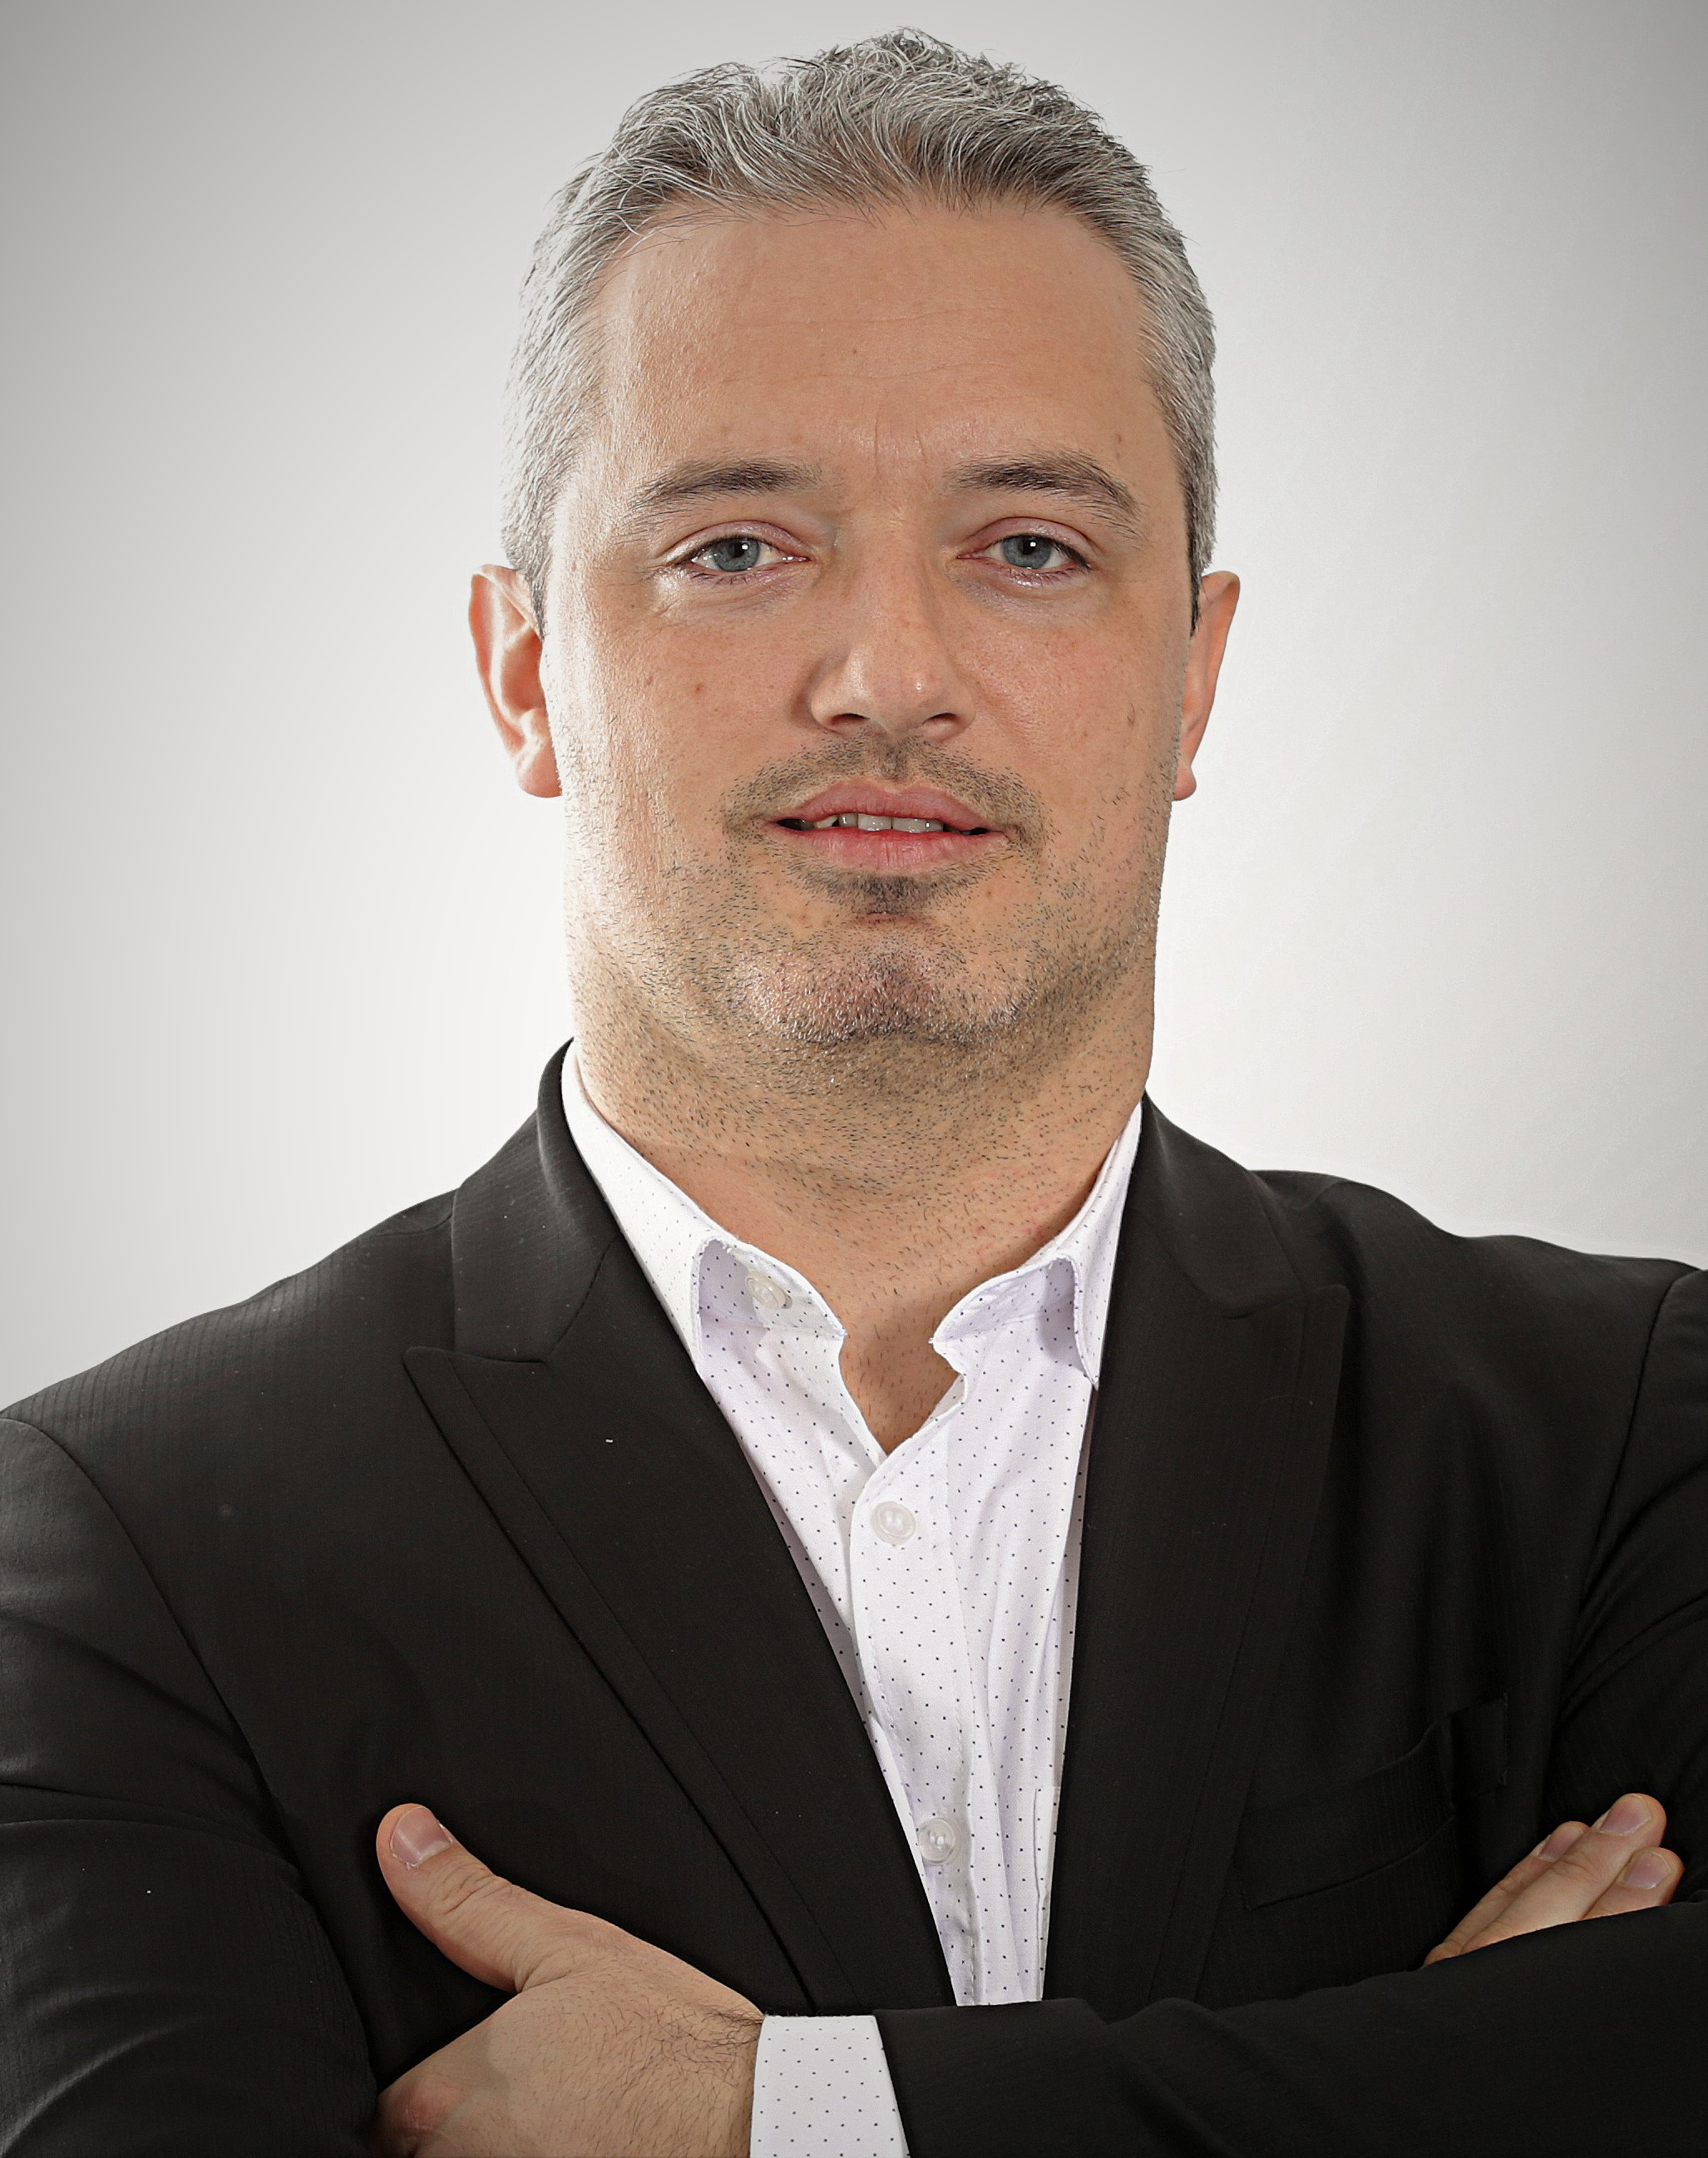 Nikola Marinov, JFD Bank Head of Marketing